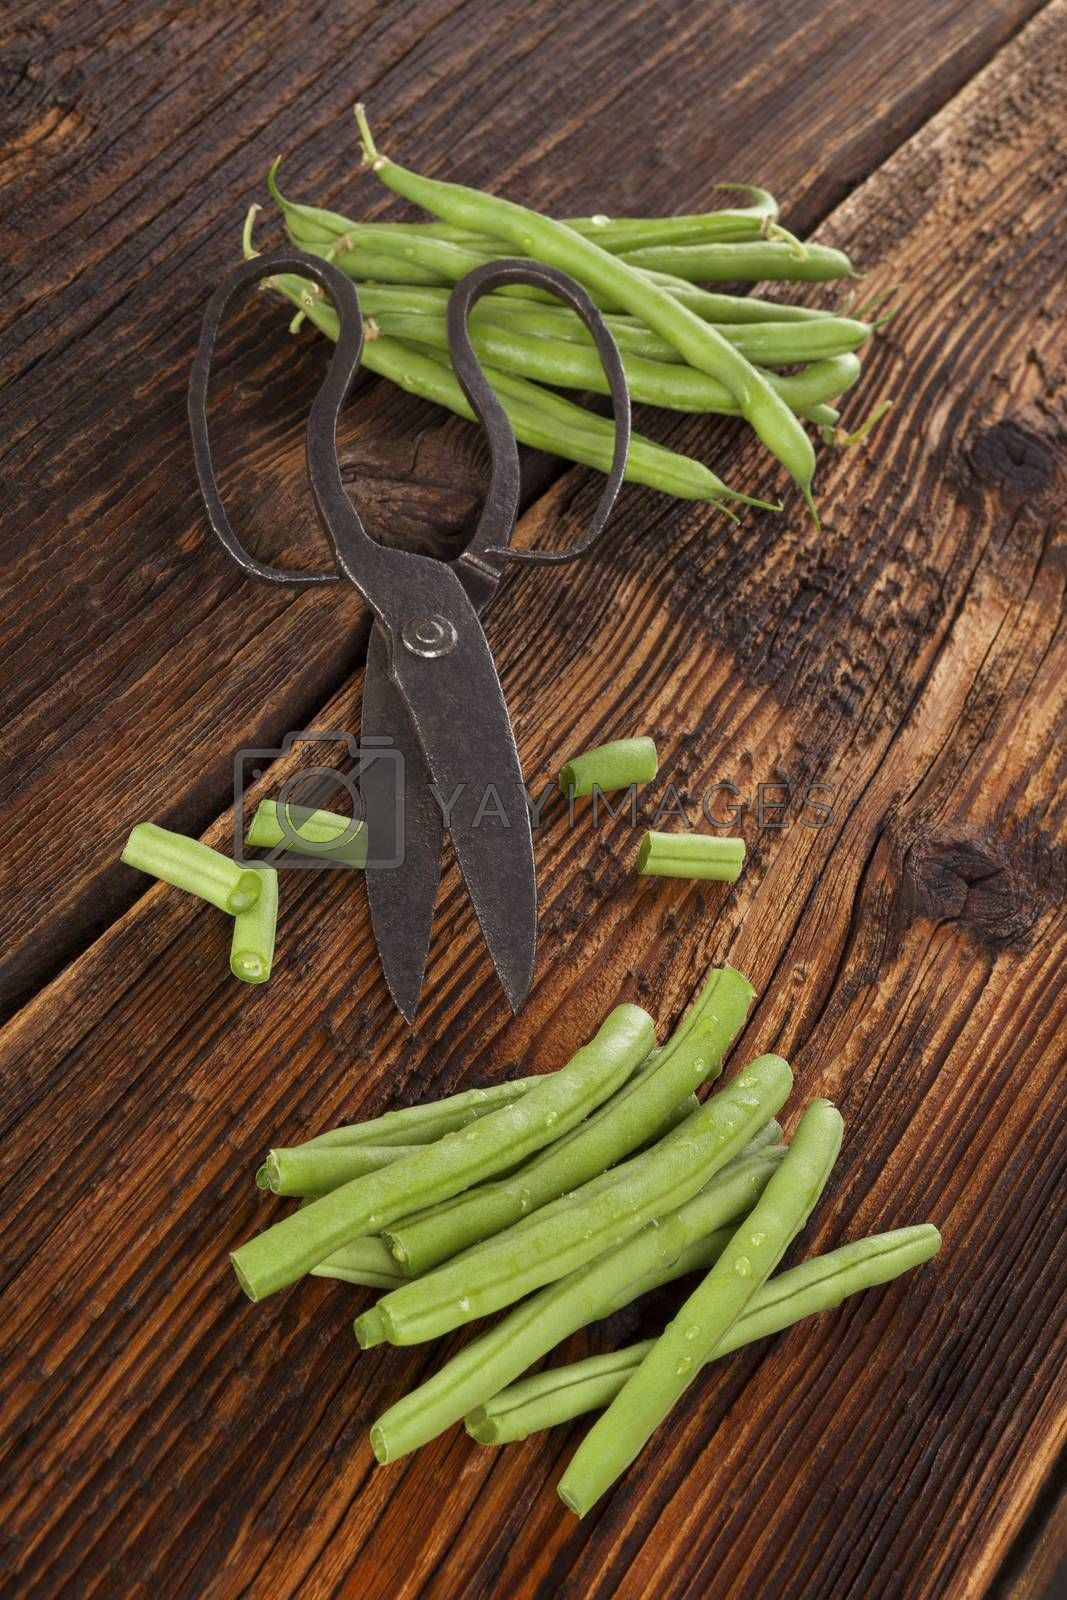 Raw fresh green beans with water drops on brown wooden textured table. Fresh vegetable eating.